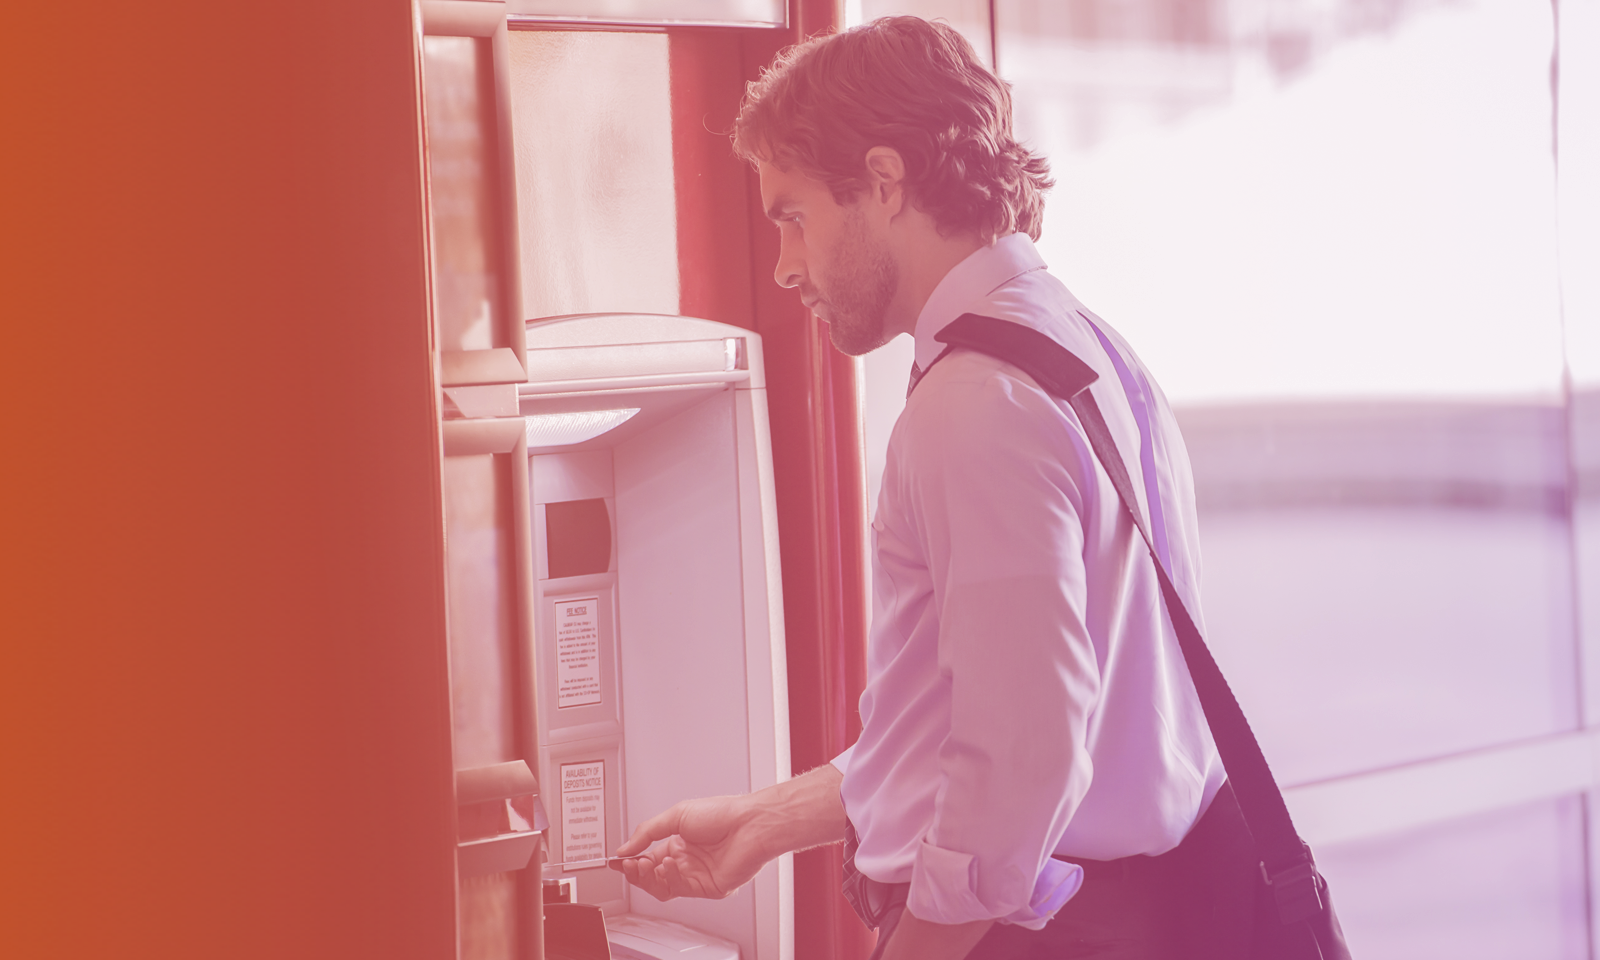 Hackers Use Diebold Nixdorf Source Code to Attack Their ATMs